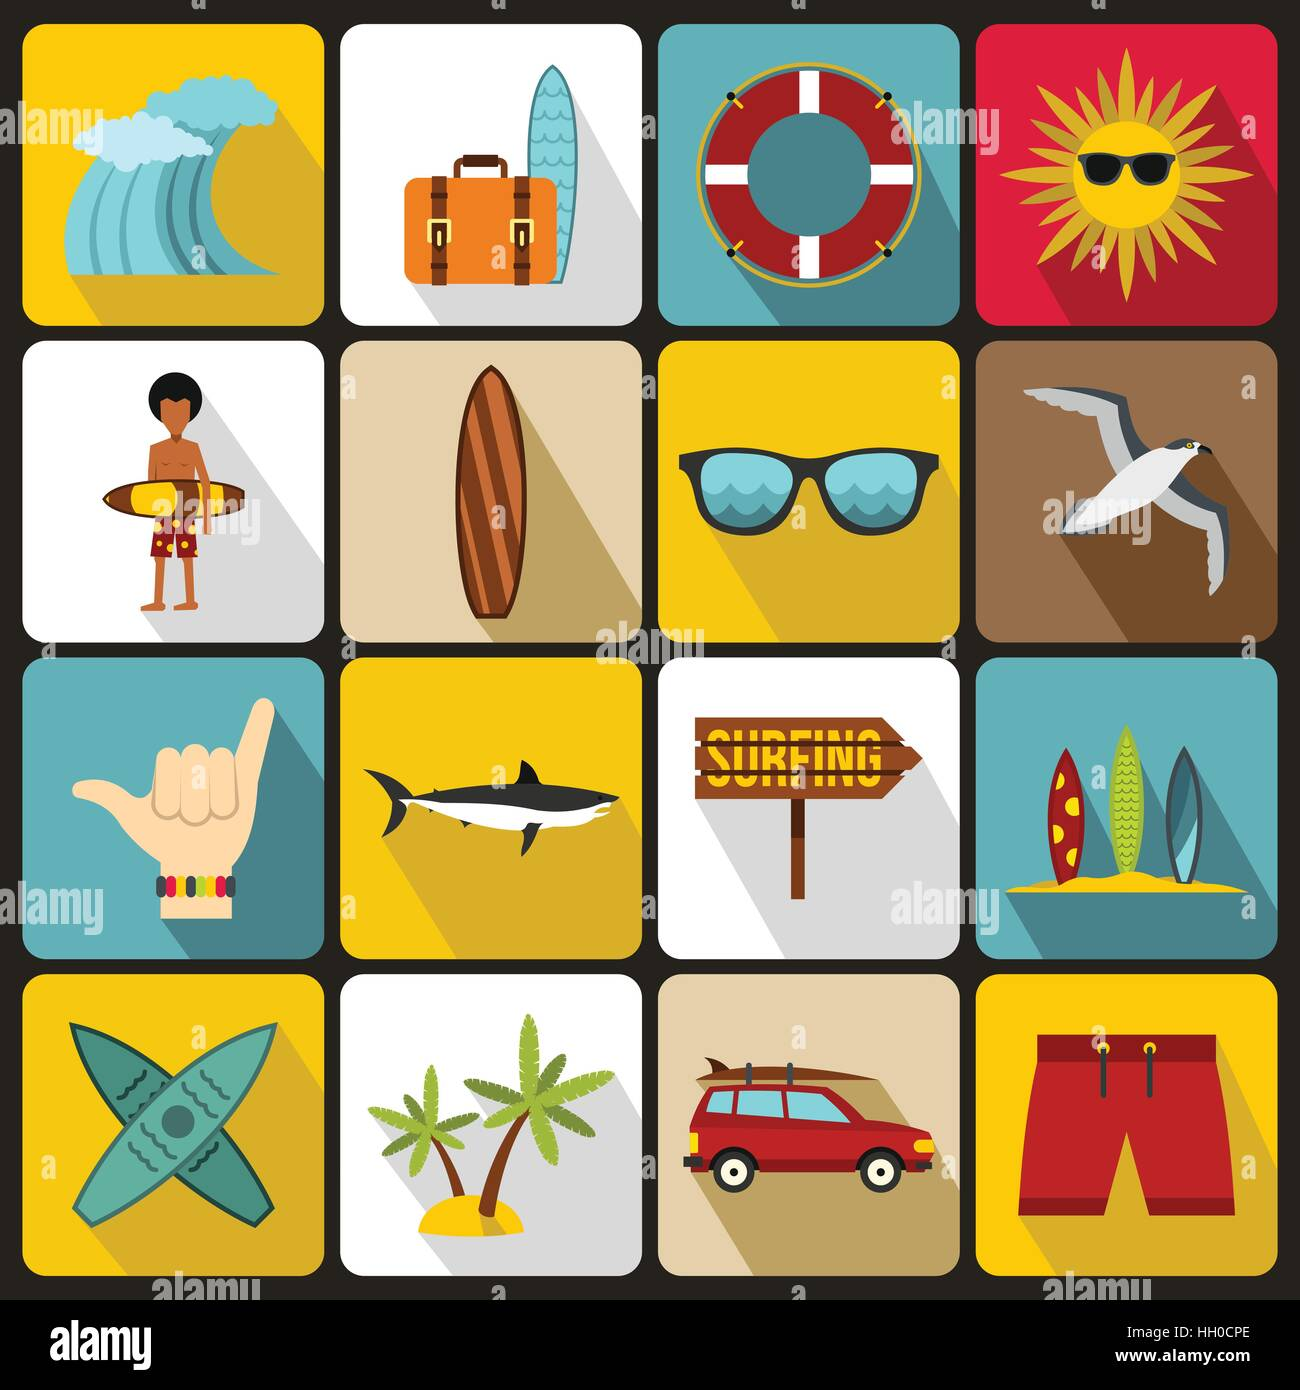 Surfing icons set, flat style - Stock Vector